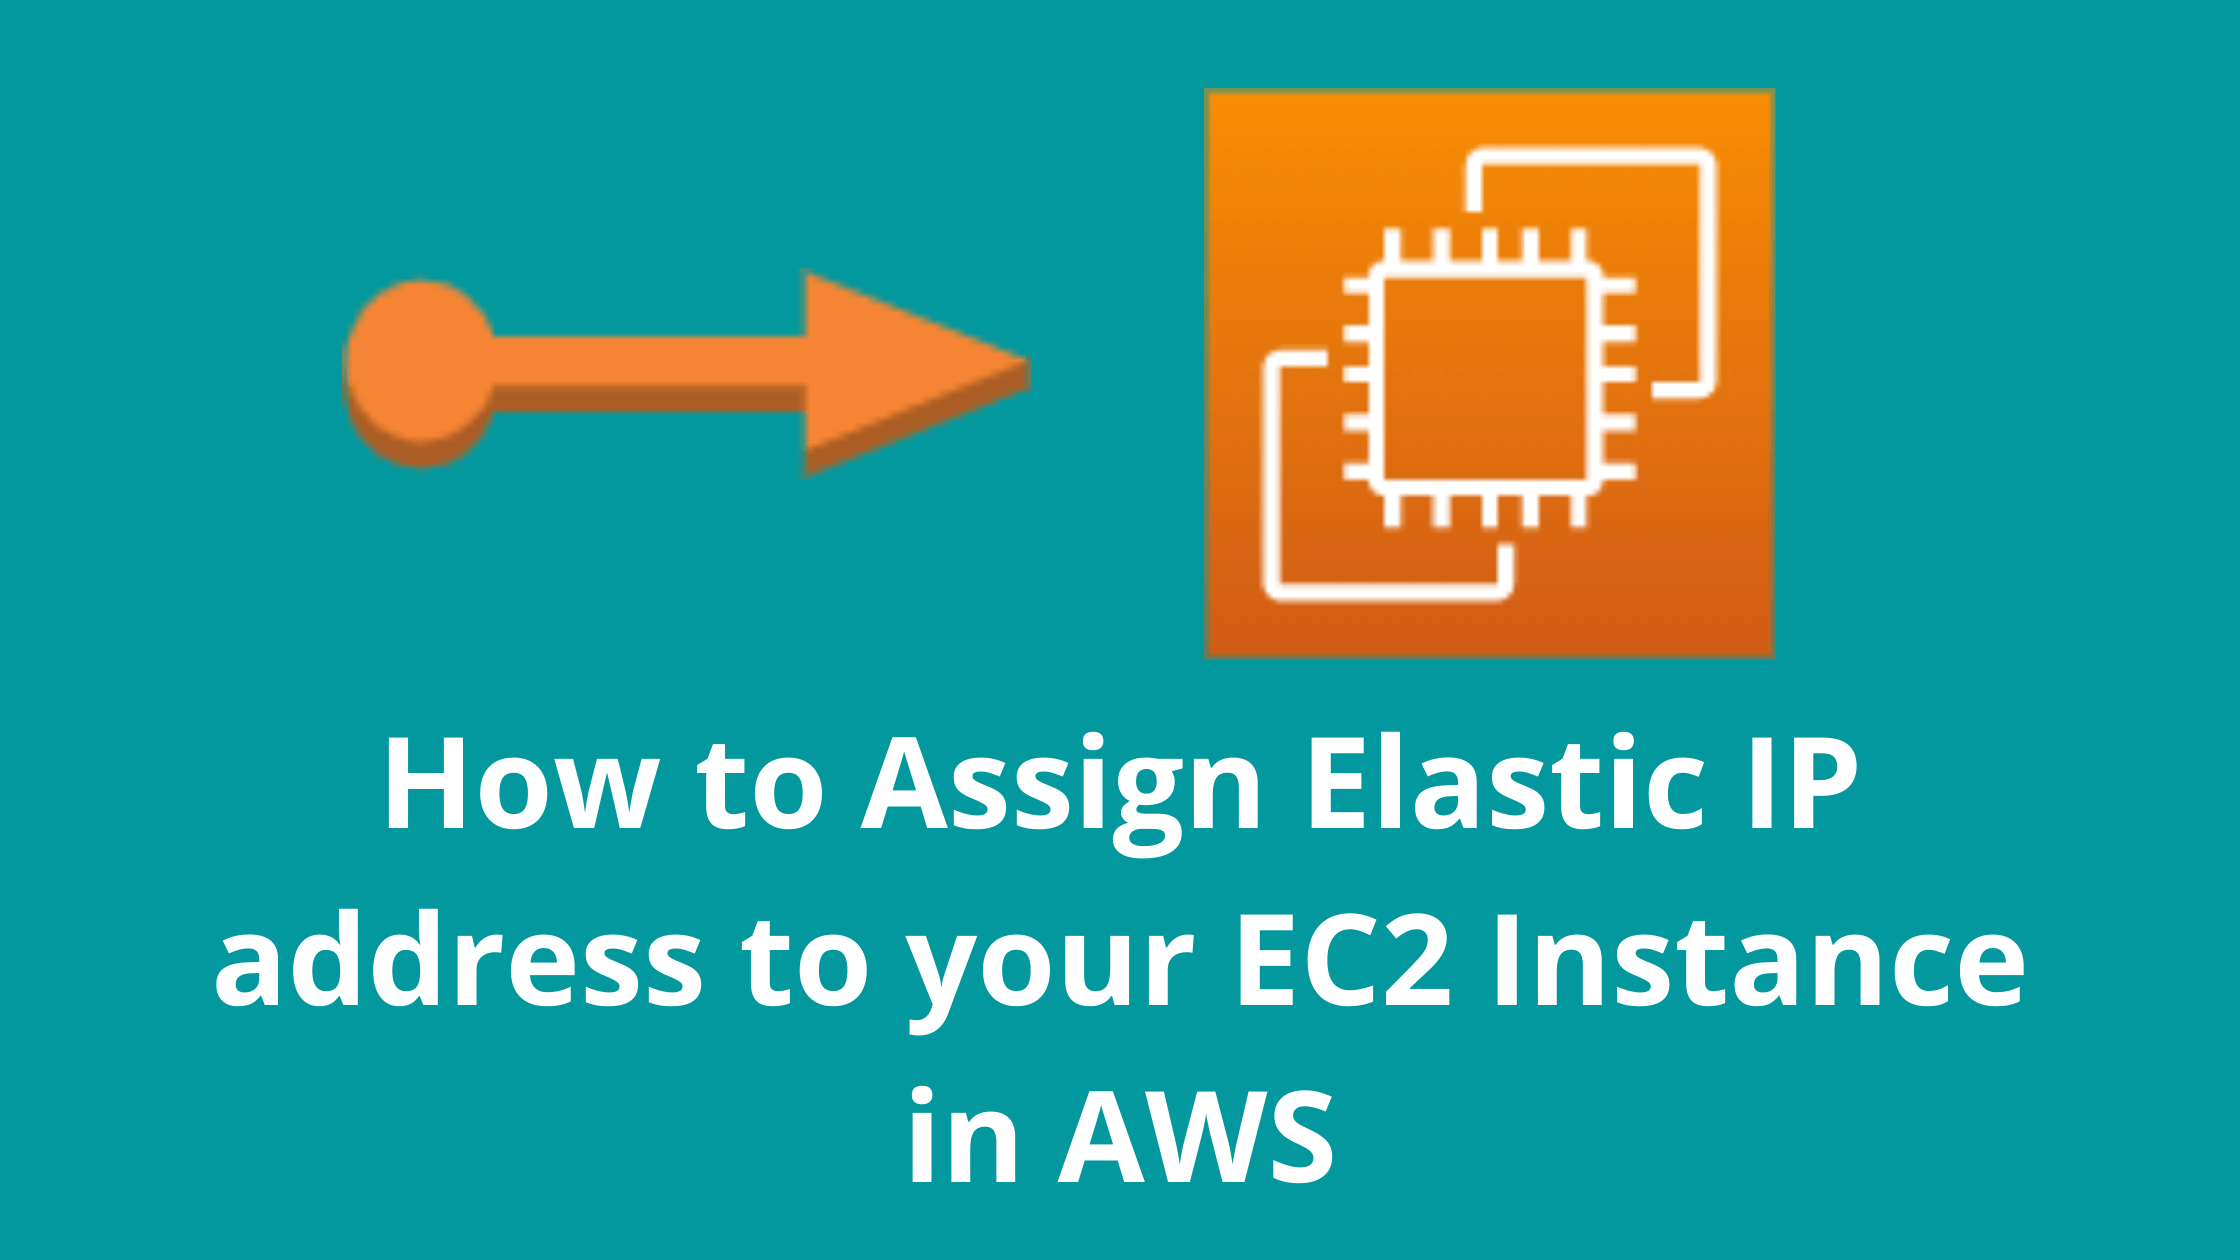 How to Assign Elastic IP address to your EC2 Instance in AWS